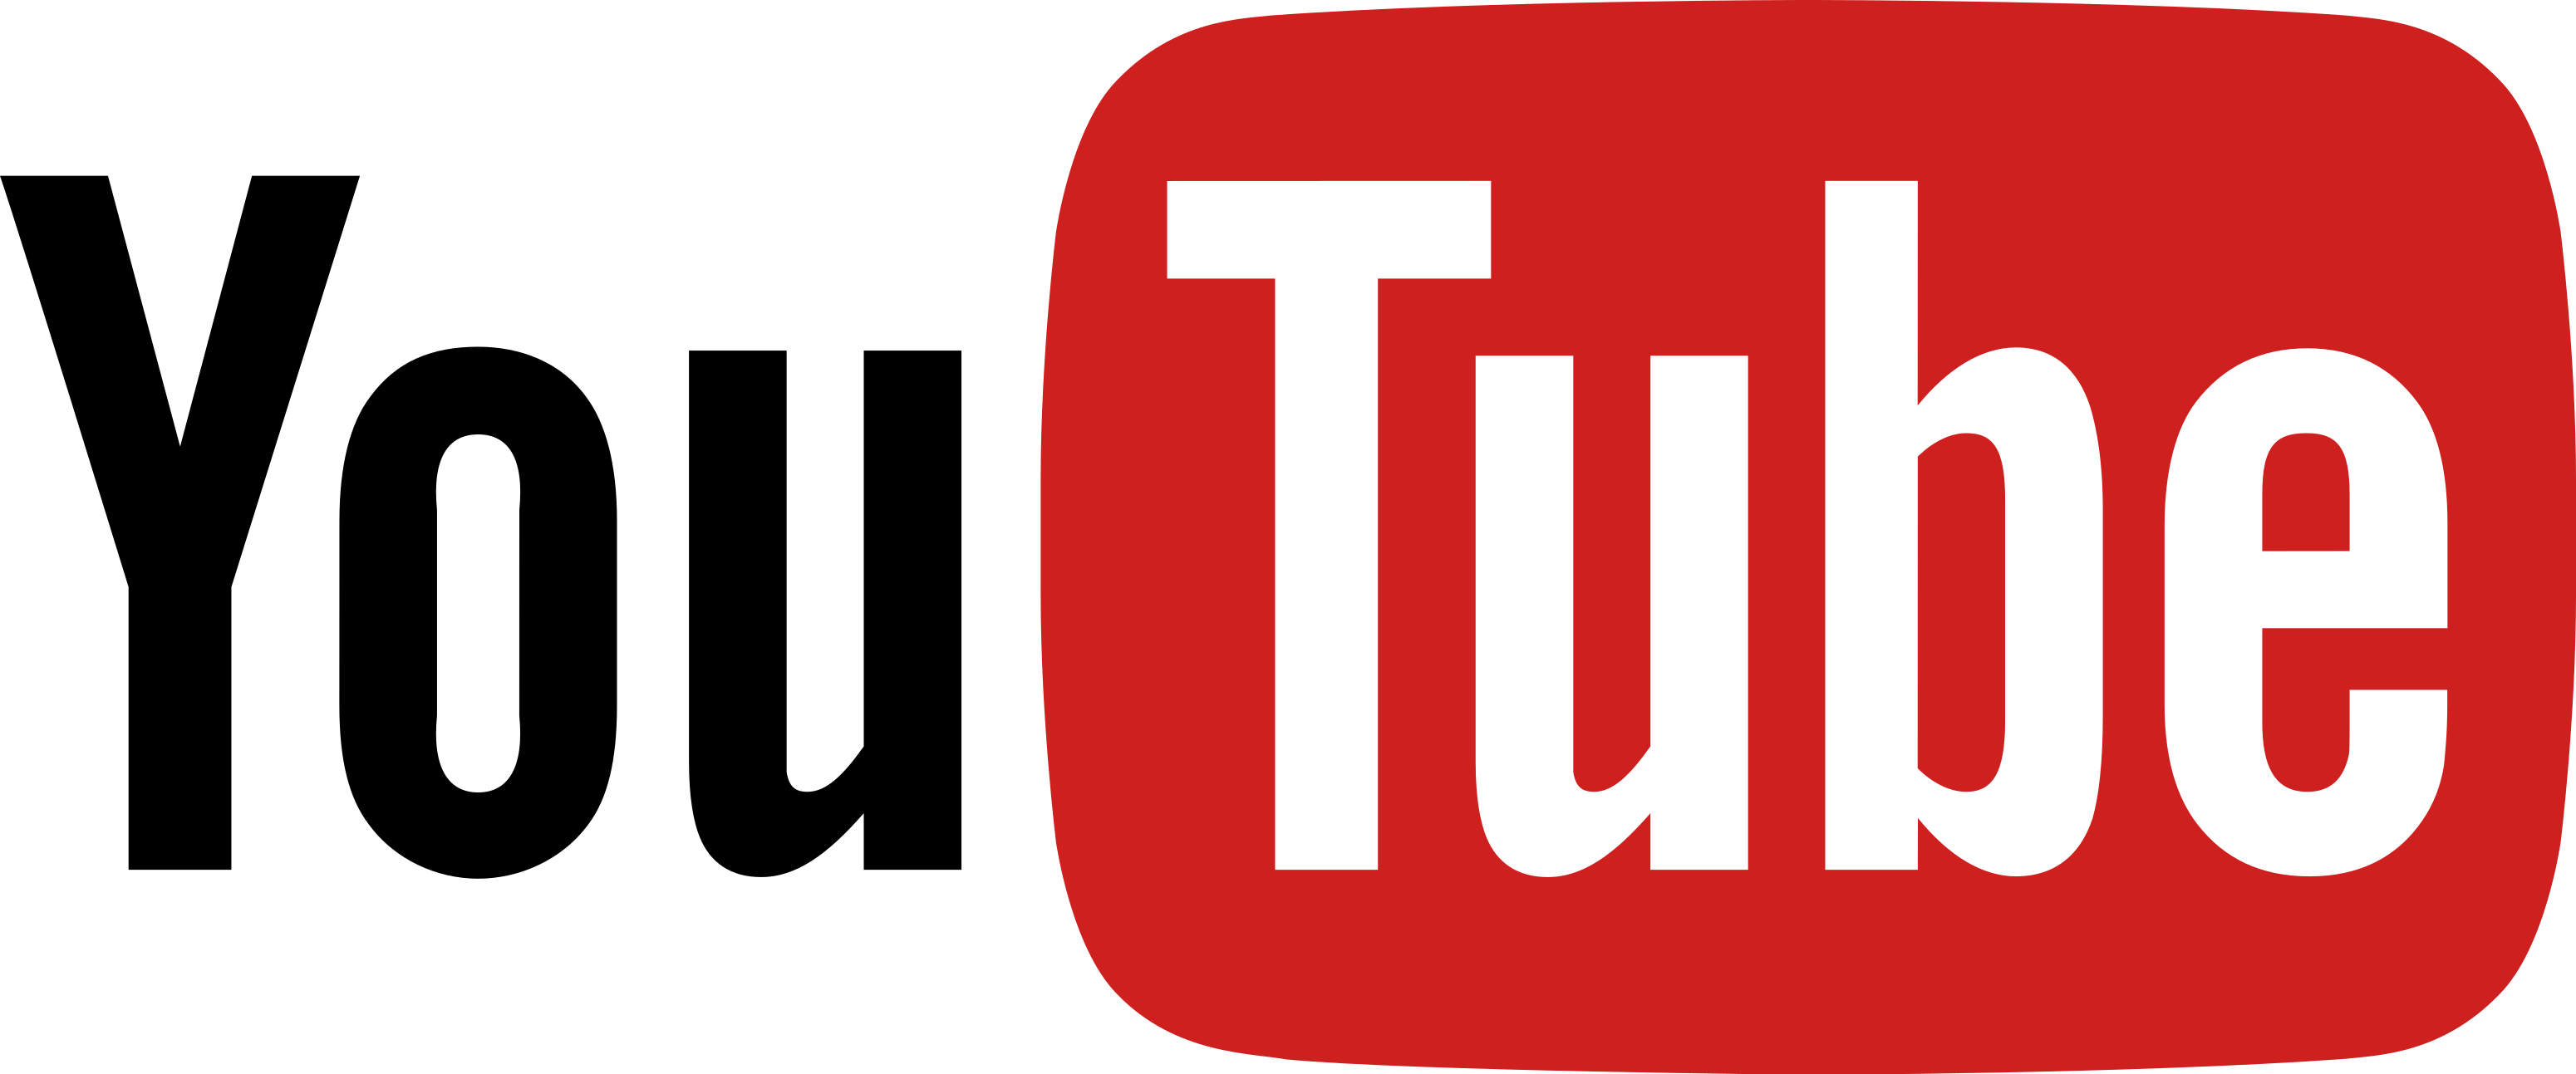 logotipo-youtube-redes-sociais-tecnico-do-emprego